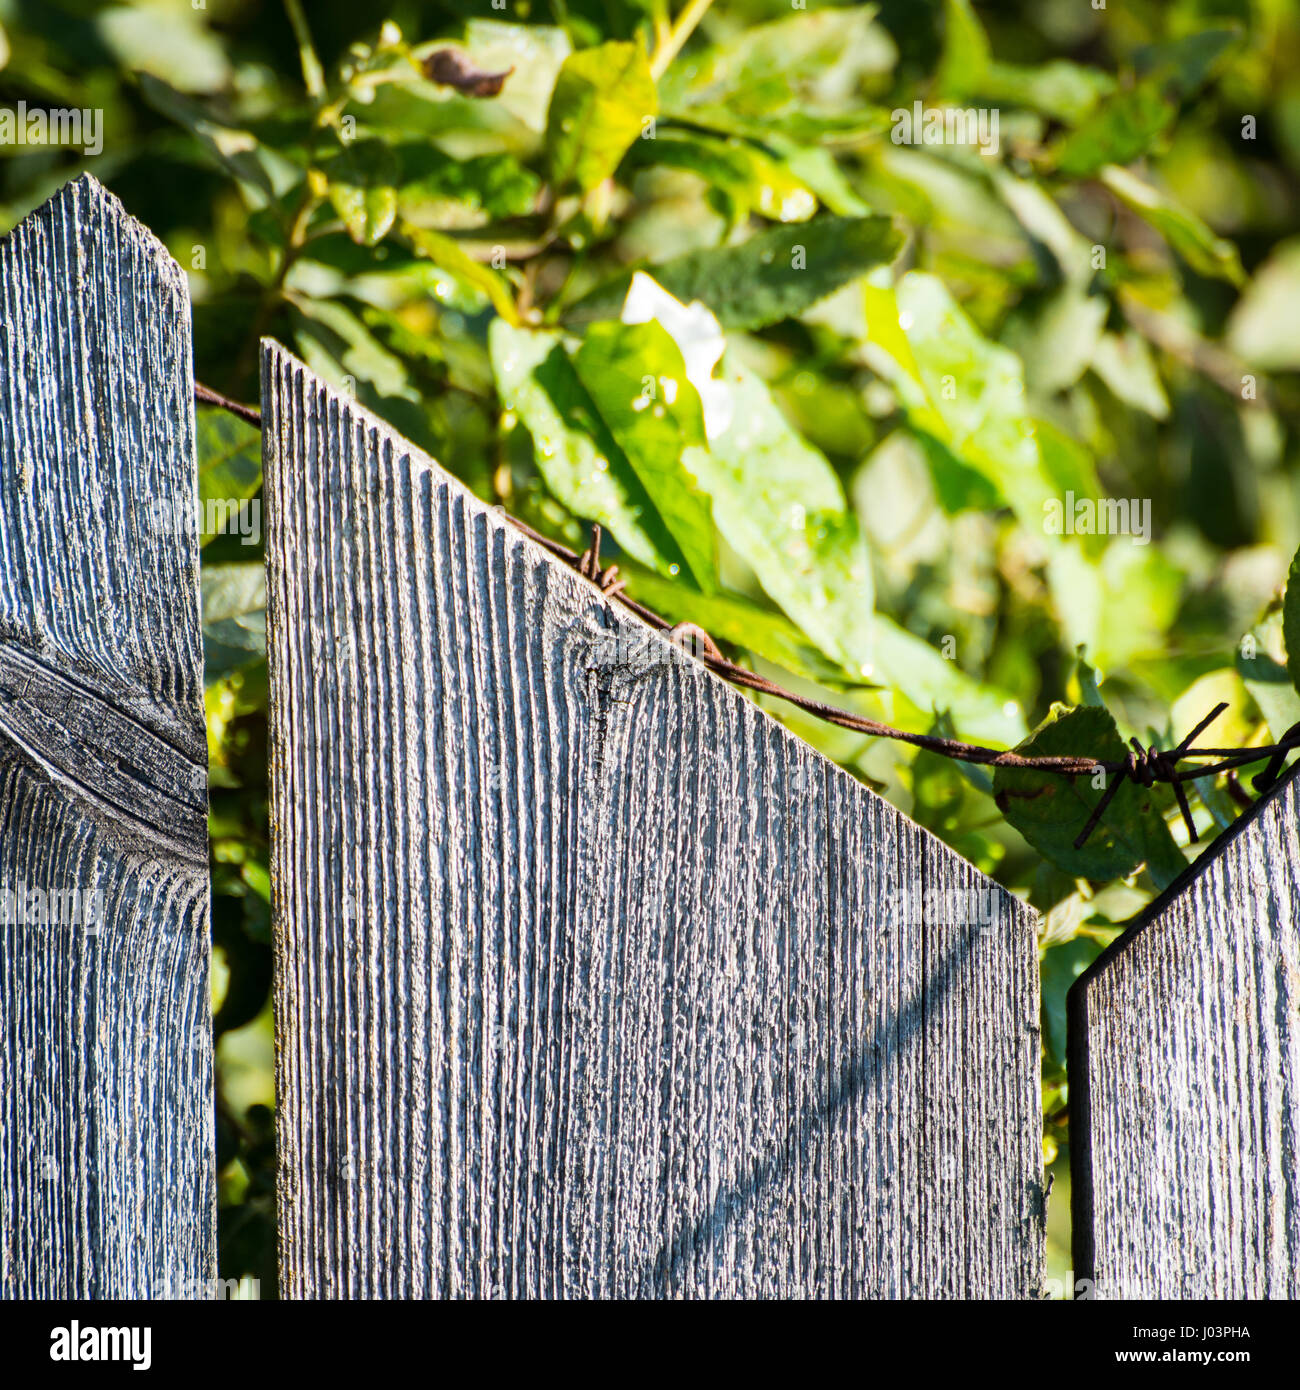 Old Wooden Fence Barbed Wire Stock Photos & Old Wooden Fence Barbed ...